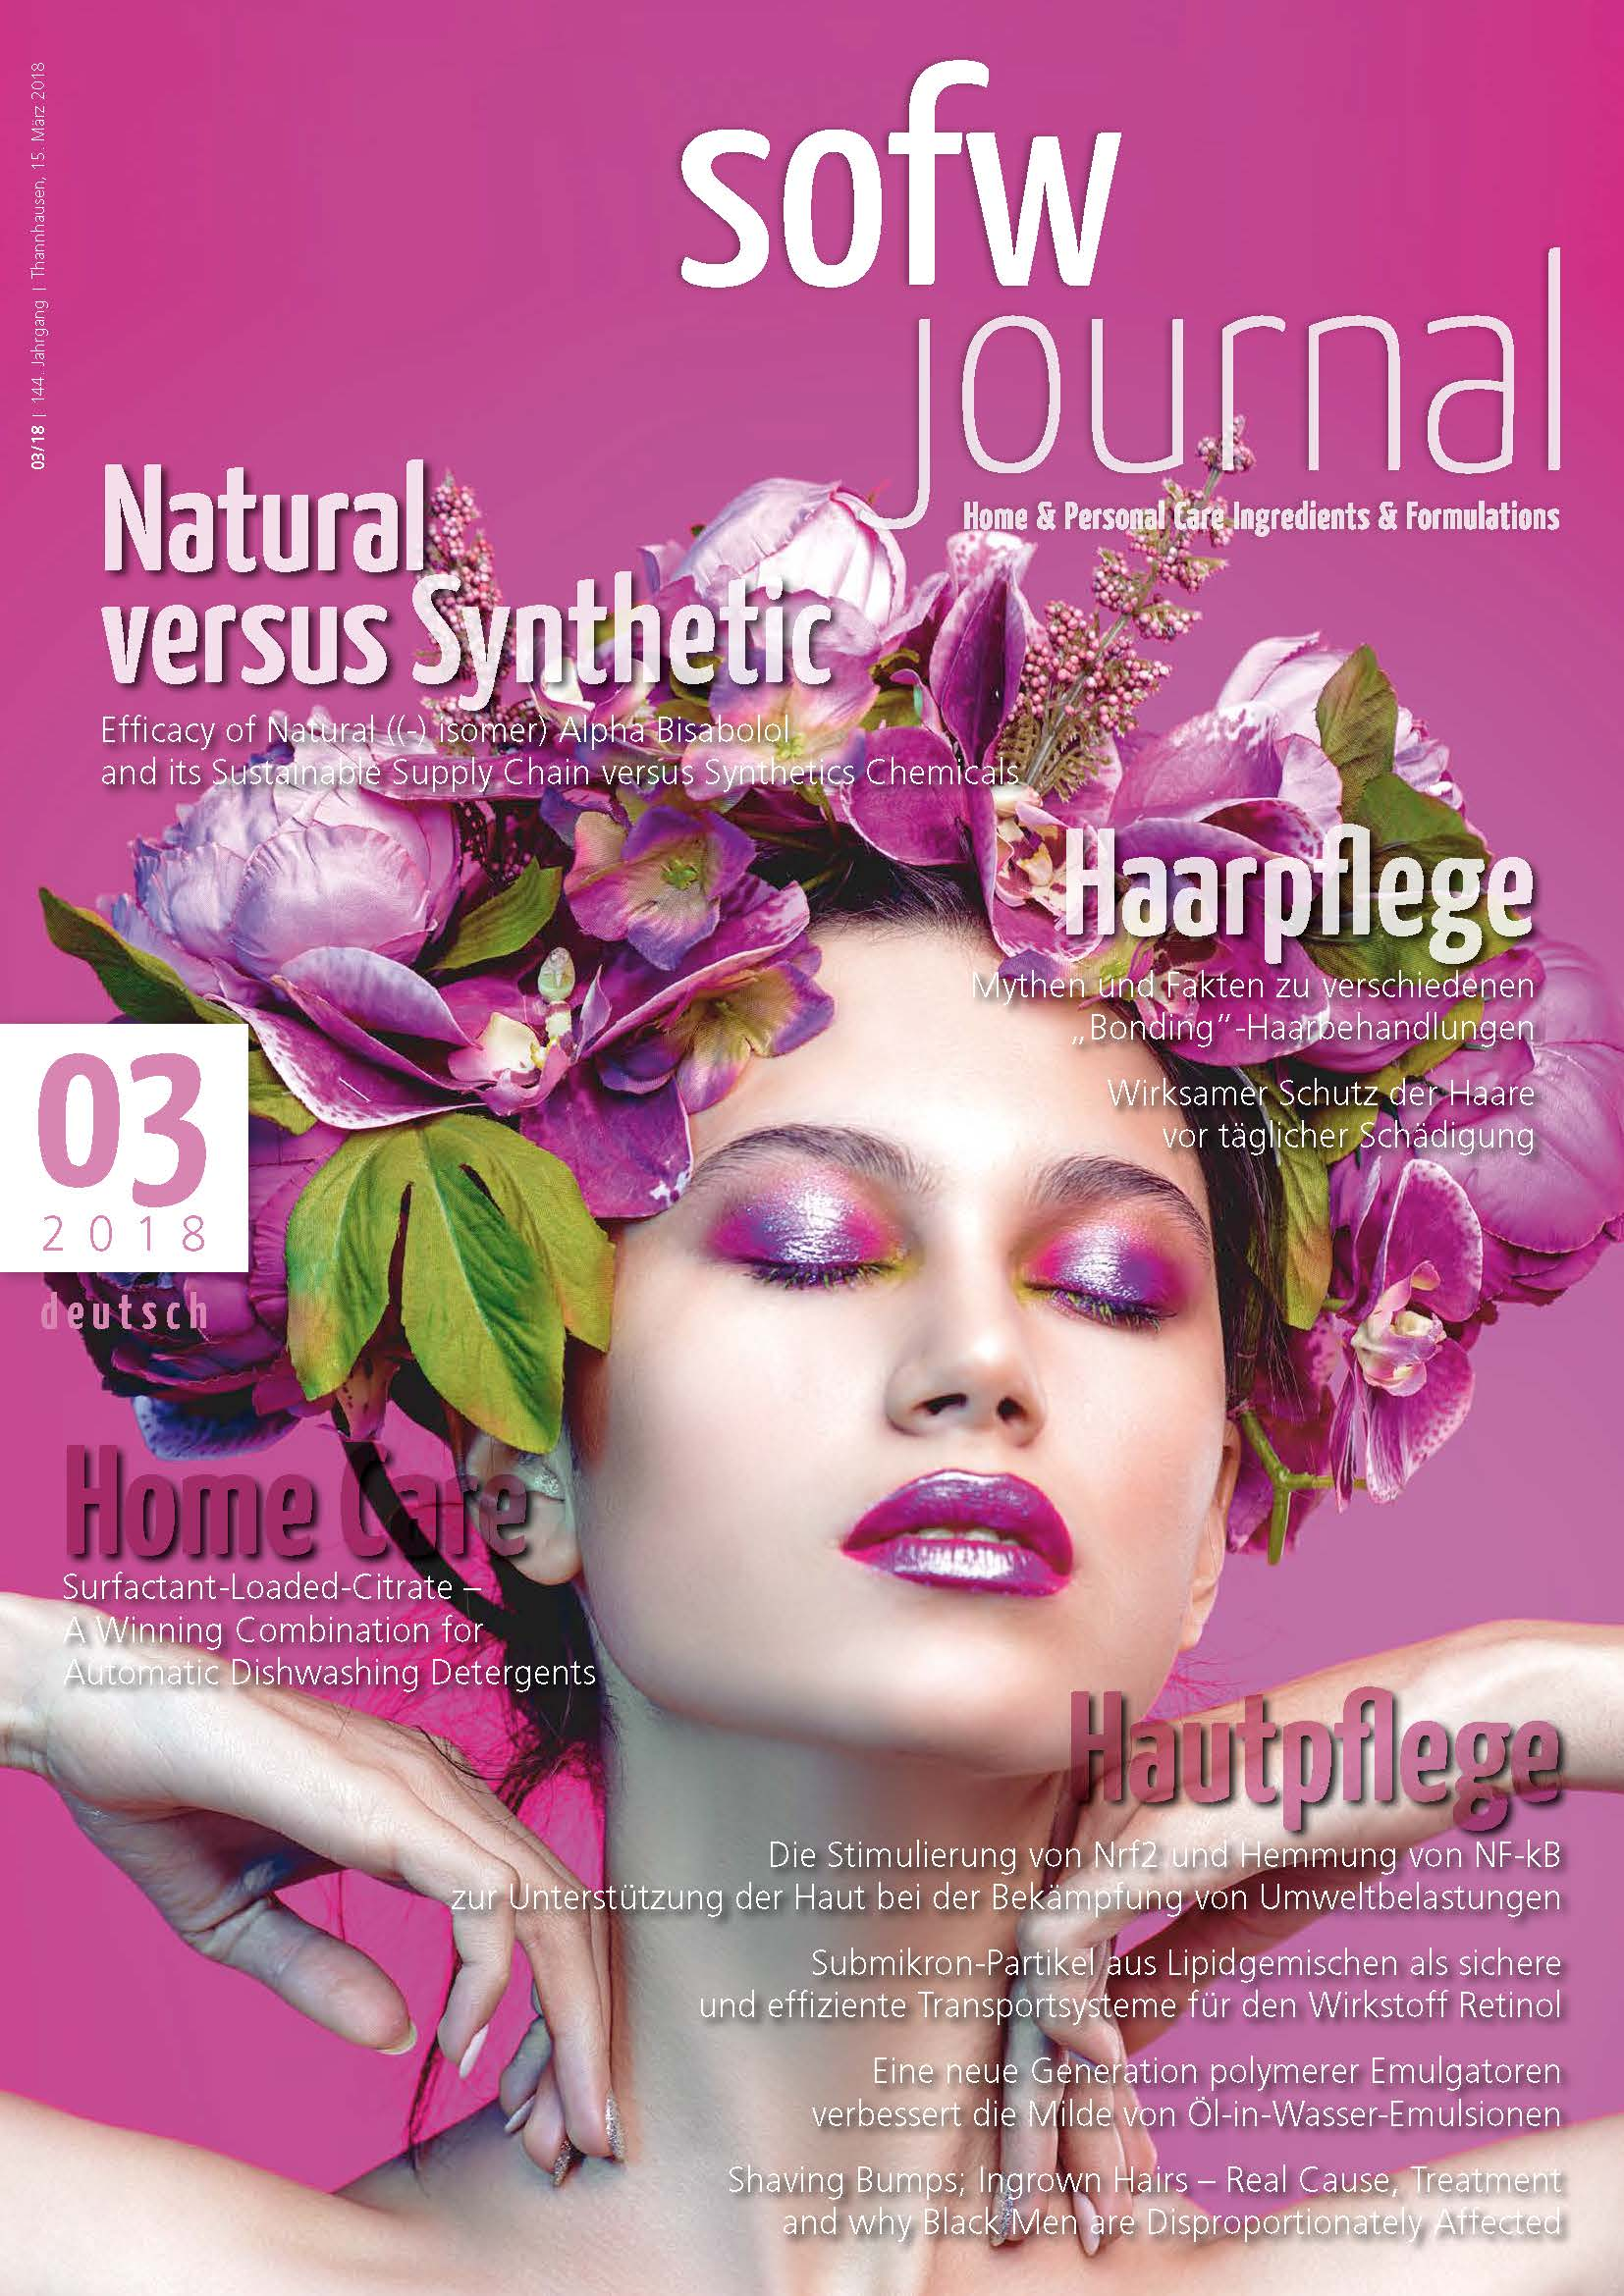 sofwjournal_de_2018_03_cover_1537916016